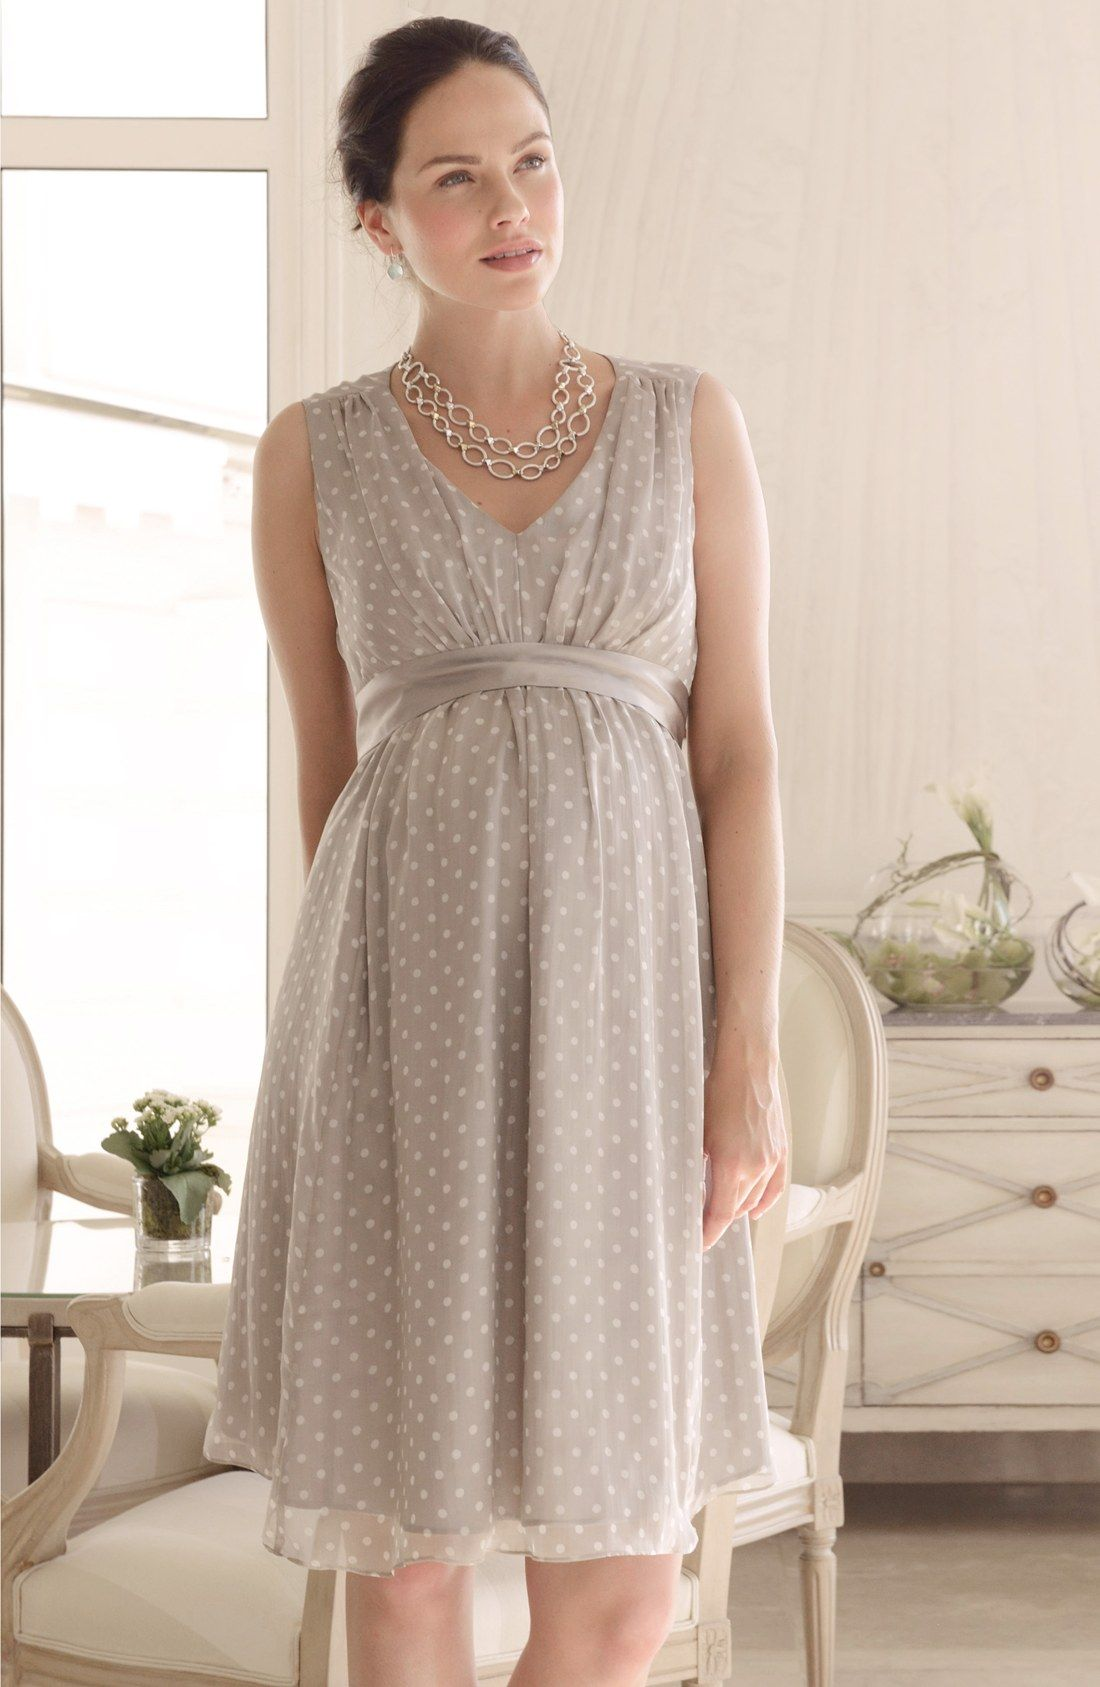 345794c48d24f Maternity Dresses For Weddings Seraphine – DACC